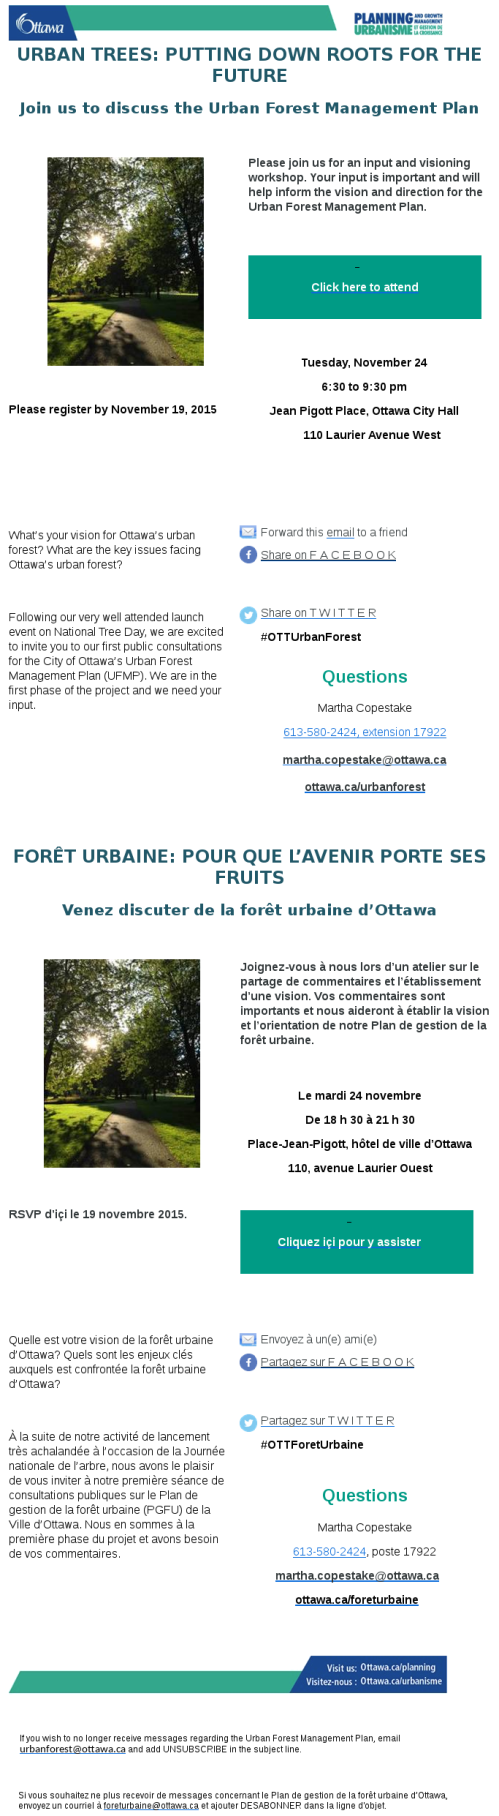 [Picture of Urban Forest e-Mail - formatting too complex to put in a post]